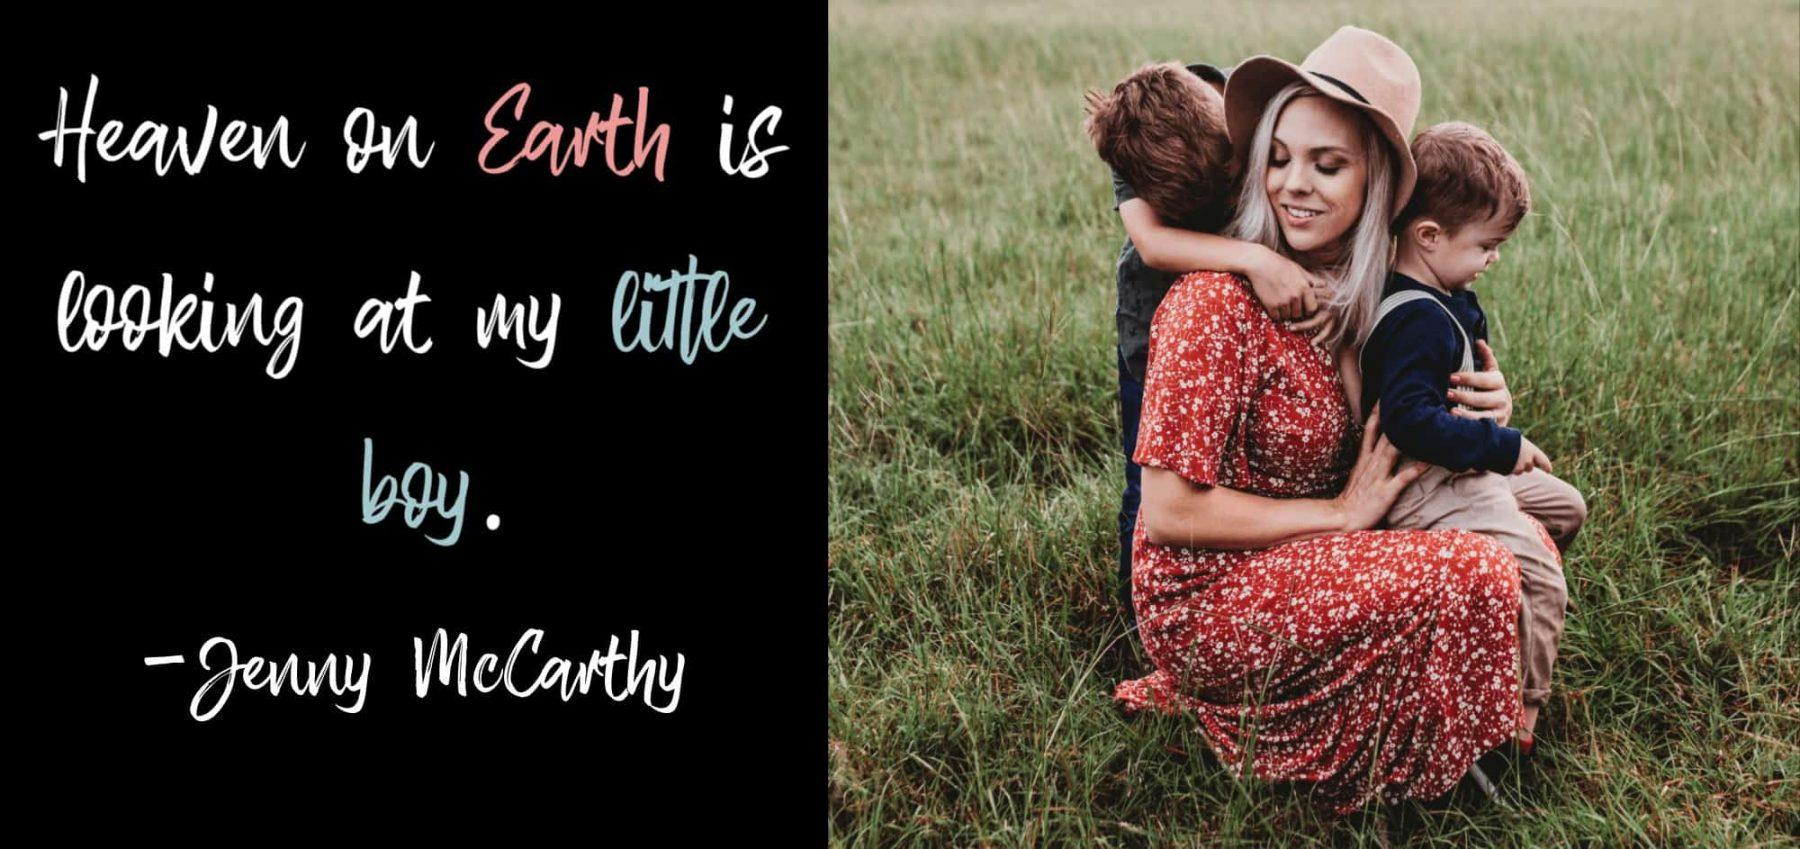 """boy mom quote - """"Heaven on Earth is looking at my little boy."""" Jenny McCarthy"""